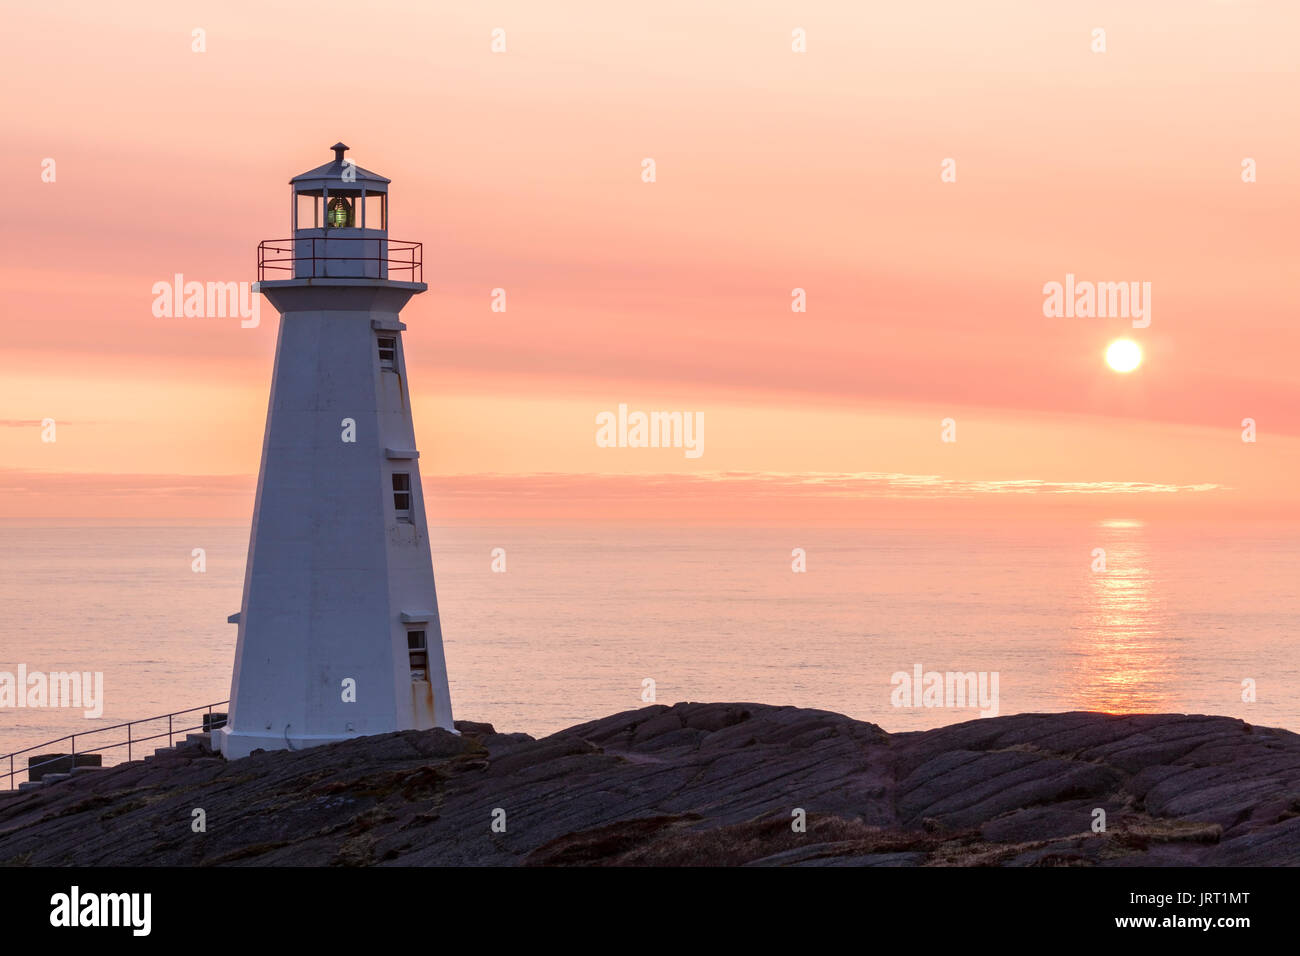 The 1955 concrete Lighthouse at Cape Spear National Historic Site of Canada at sunrise. Cape Spear, St. John's, Newfoundland and Labrador, Canada. - Stock Image